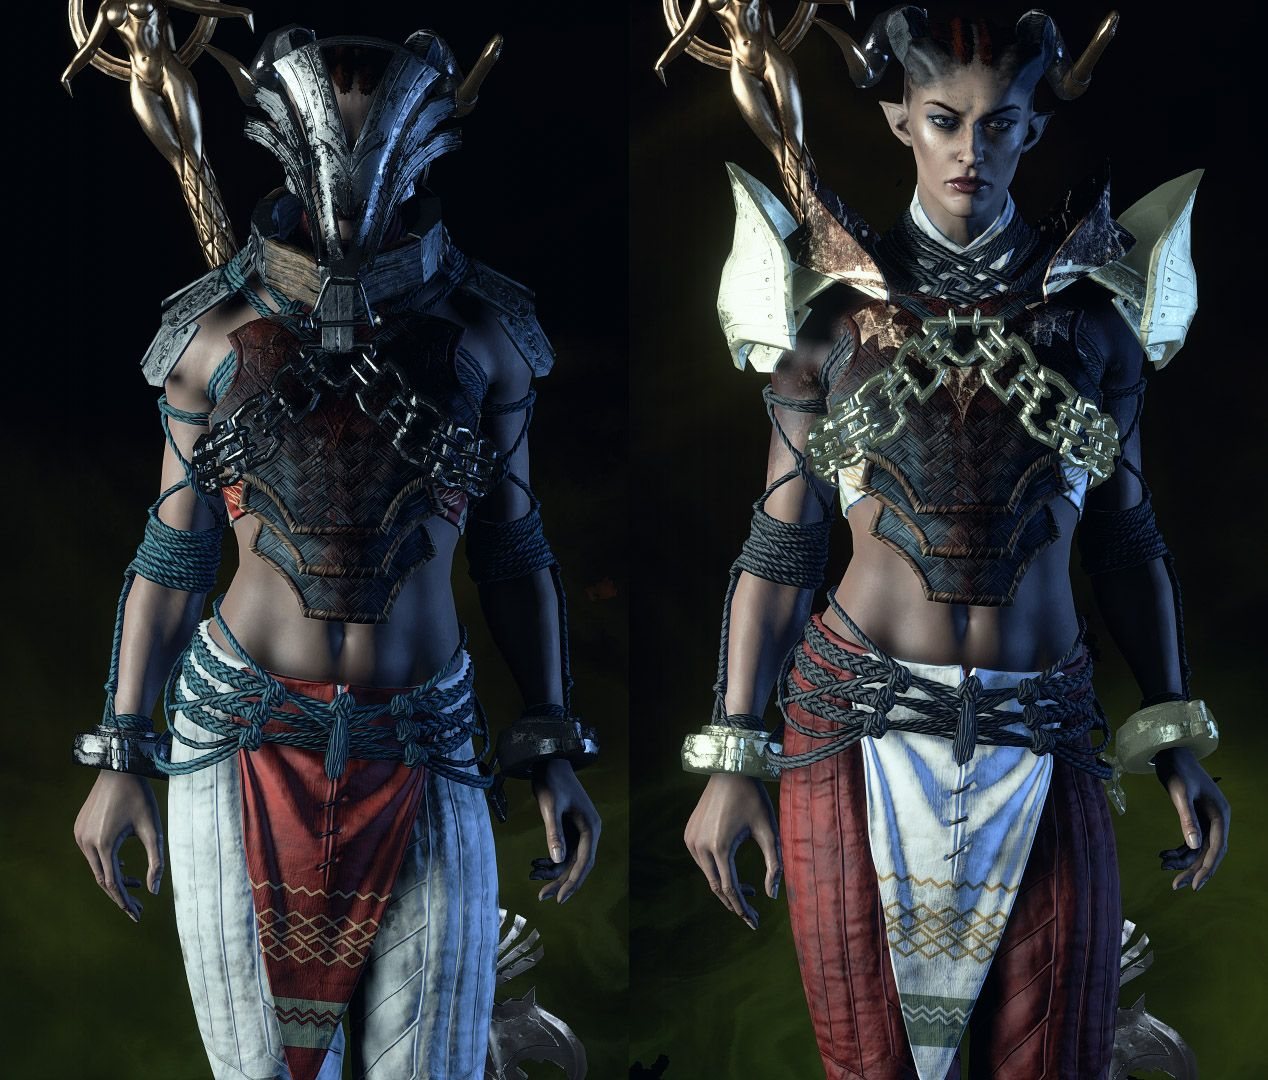 Although This Is An Image Of A Qunari Saarebas From Dragon Age The Helmet On The Left Is Almost Exactly Wh Dragon Age Qunari Dragon Age Dragon Age Inquisition The qunari get special helmets (face paint) which increase their attack rather than their defense. qunari saarebas from dragon age